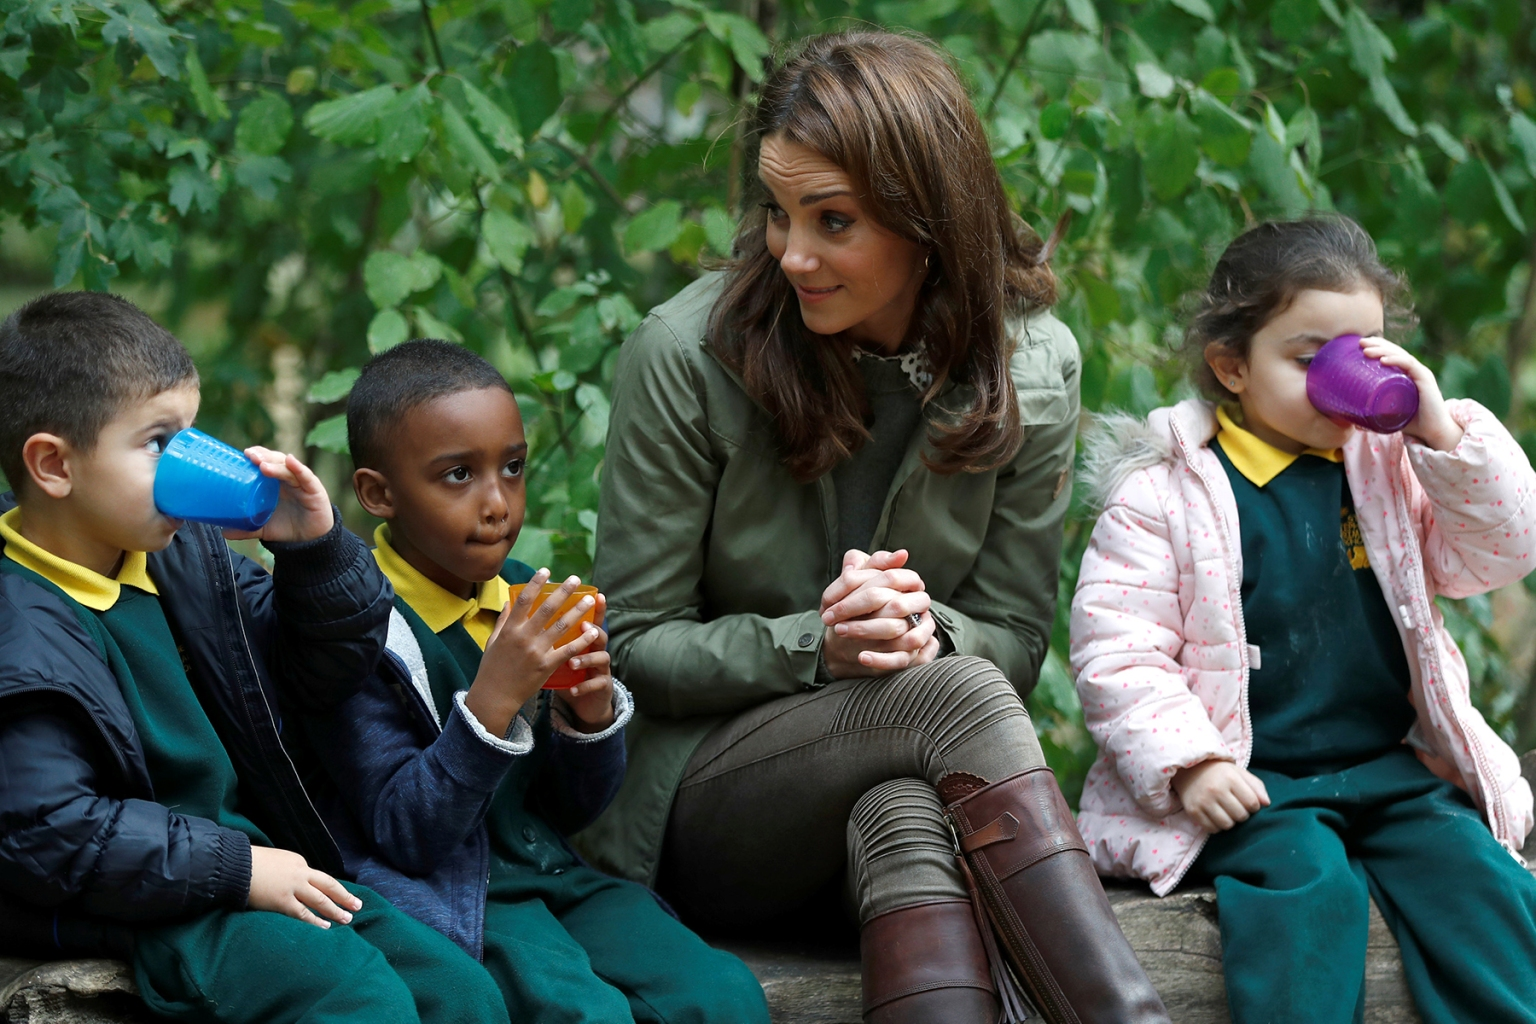 Britain's Catherine, Duchess of Cambridge, sits with schoolchildren during her visit to Sayers Croft Forest School and Wildlife Garden in London on Oct. 2. PETER NICHOLLS/AFP/Getty Images